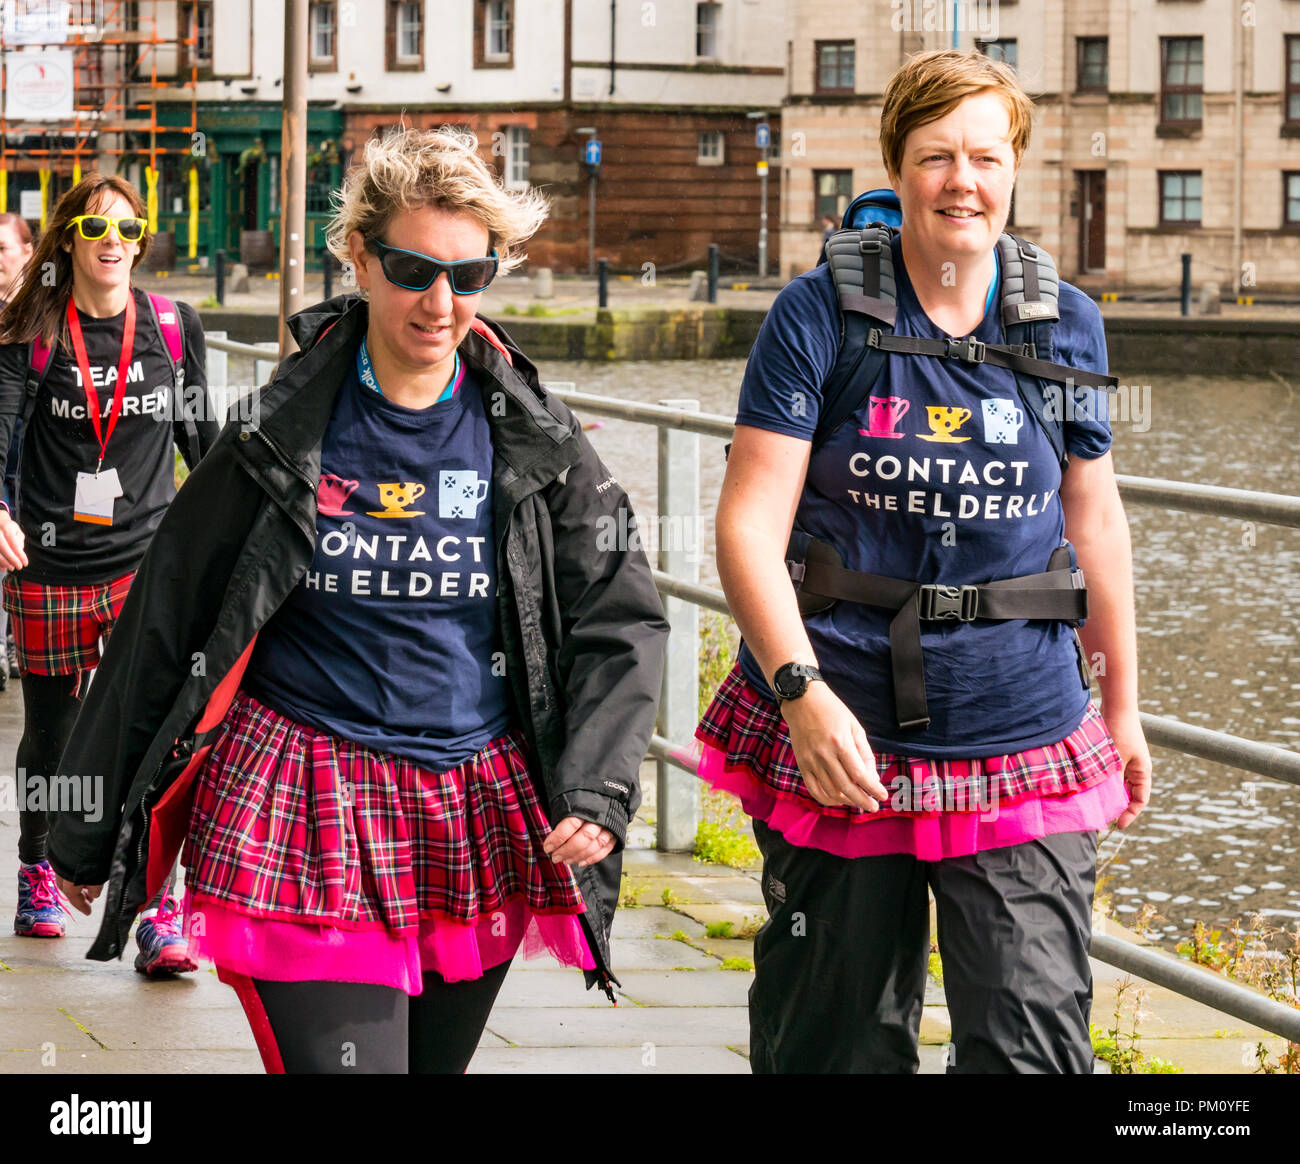 Leith, Edinburgh, Scotland, UK, 16th September 2018. Edinburgh Kilt Walk, the last of four kilt walks this year after those in Glasgow, Aberdeen and Dundee, sponsored by the Royal Bank of Scotland, takes place today. Walkers raise funds for a charity of their choice. There are three walk lengths: the full 24 miles from Holyrood Park to BT Murrayfield Stadium and two shorter walks of 15.5 and 5 miles. The kilt walkers reach The Shore in Leith at about Mile 14. Women in costumed kilts walk along the riverbank raising money for a charity called Contact the Elderly - Stock Image